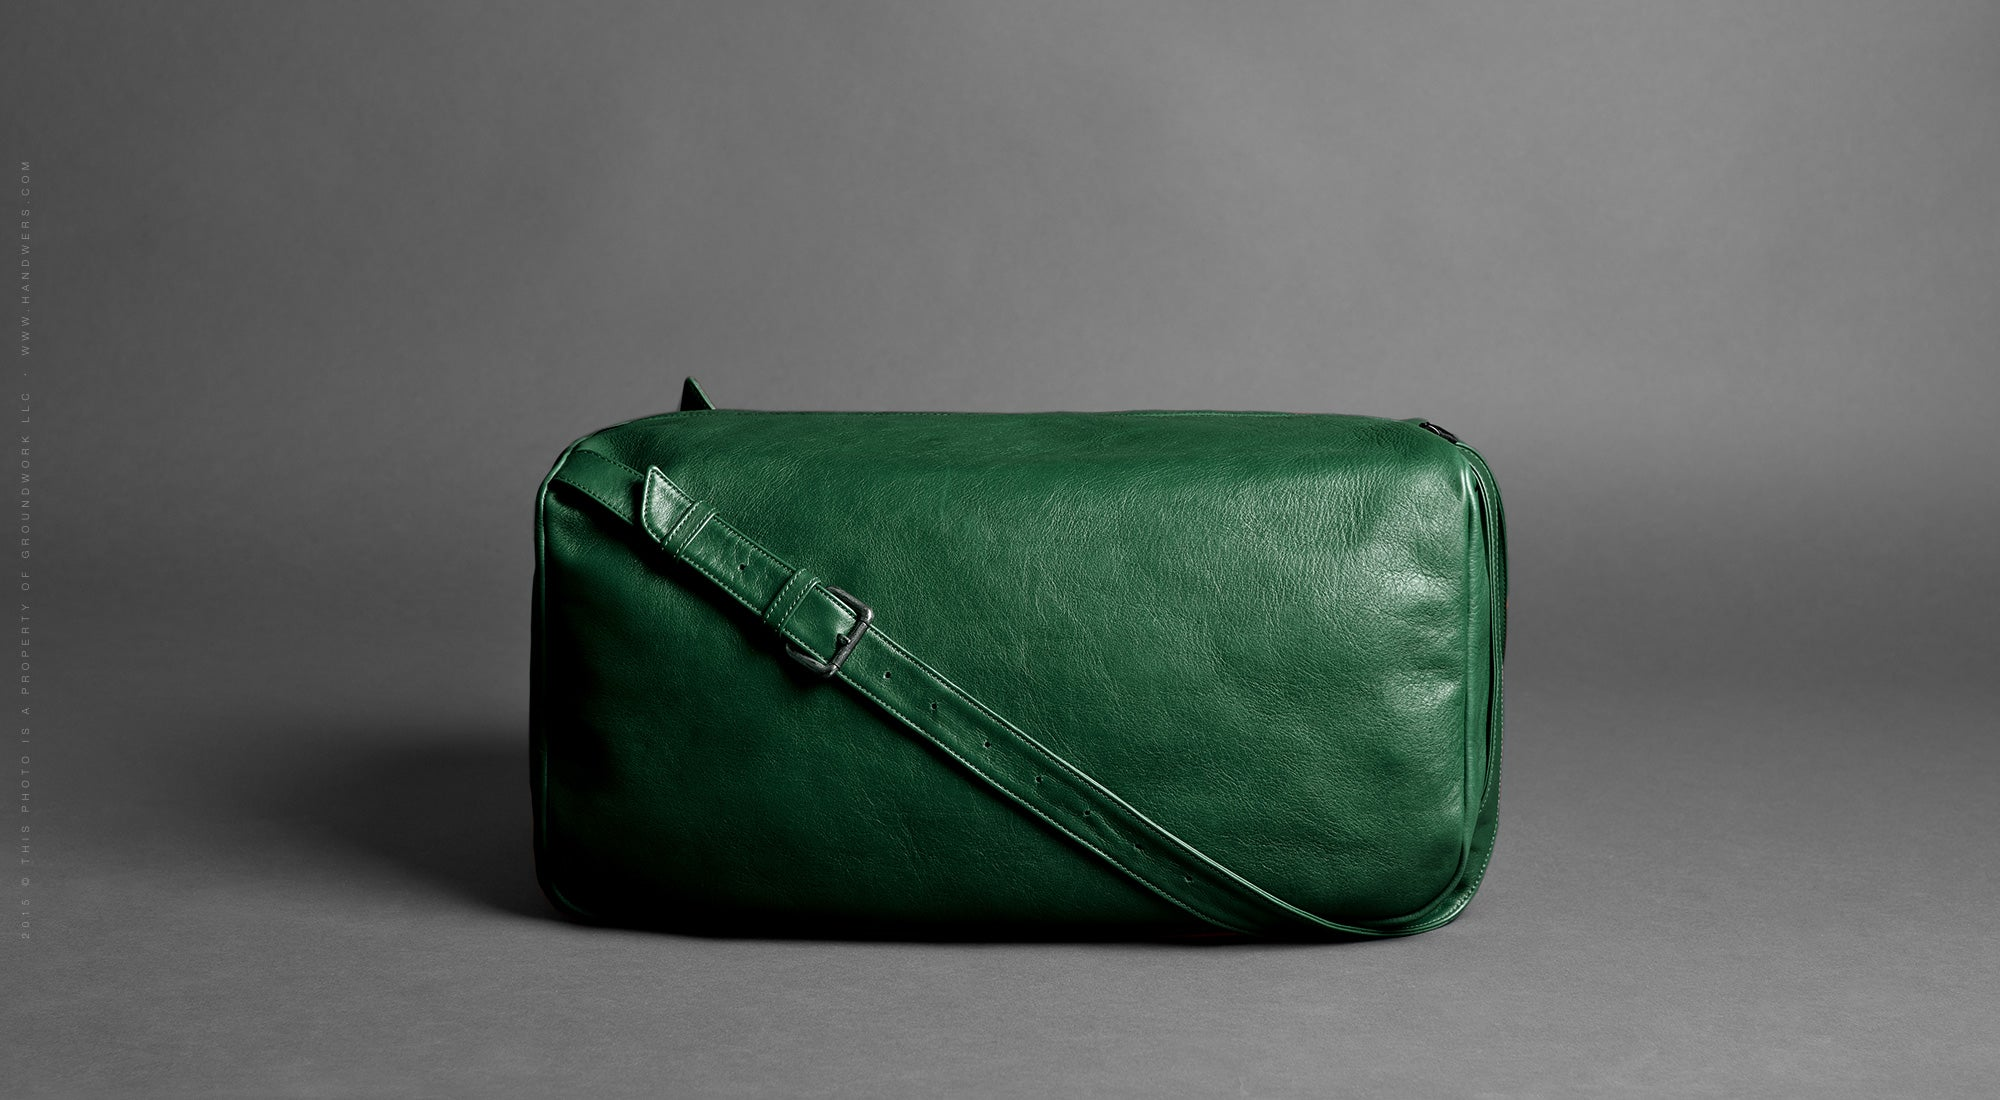 Leather Travel Duffel Bag - Pilgrim in Green by HANDWERS on Jetset Times SHOP